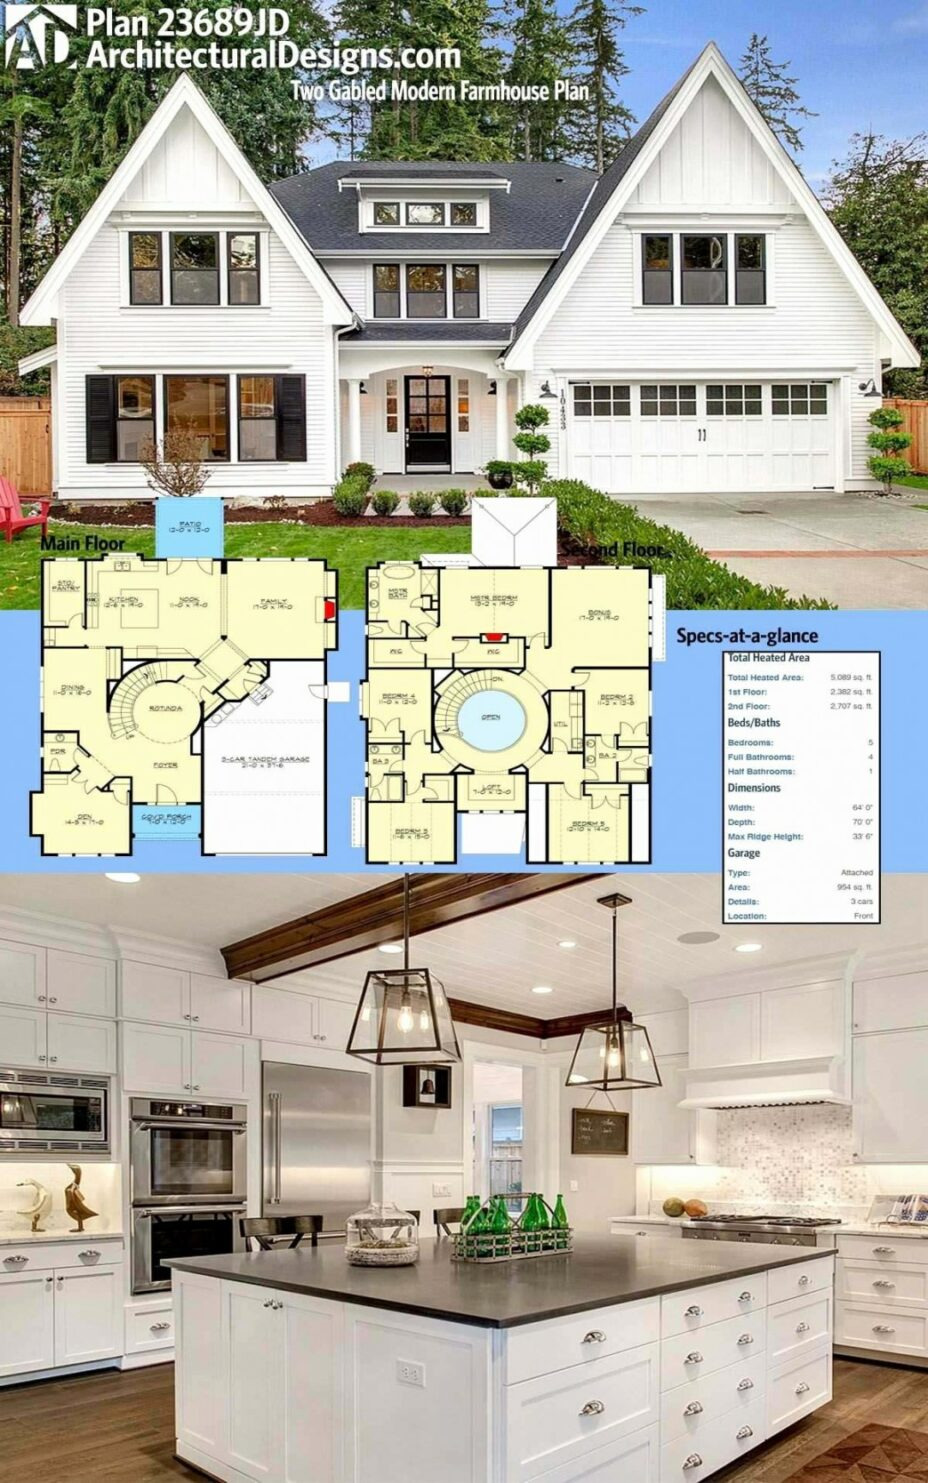 Unique Small House Plans Luxury Small House 58 Unique Front Designs for Small Houses